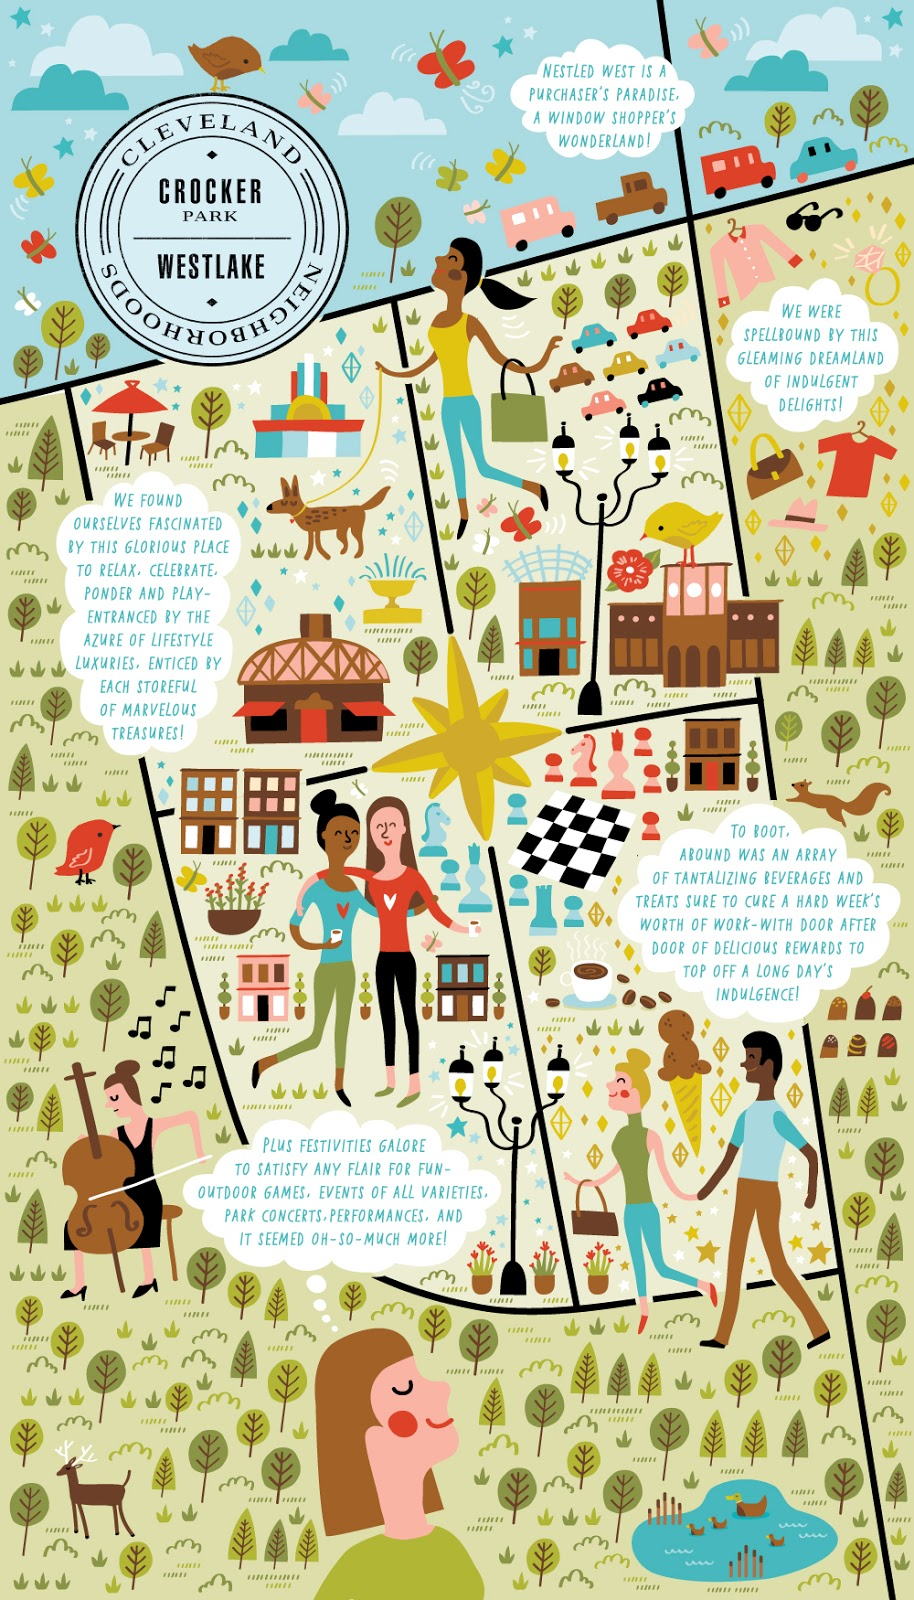 I draw maps illustrated map mural of american greetings illustrated map mural of american greetings headquarters by nate padavick m4hsunfo